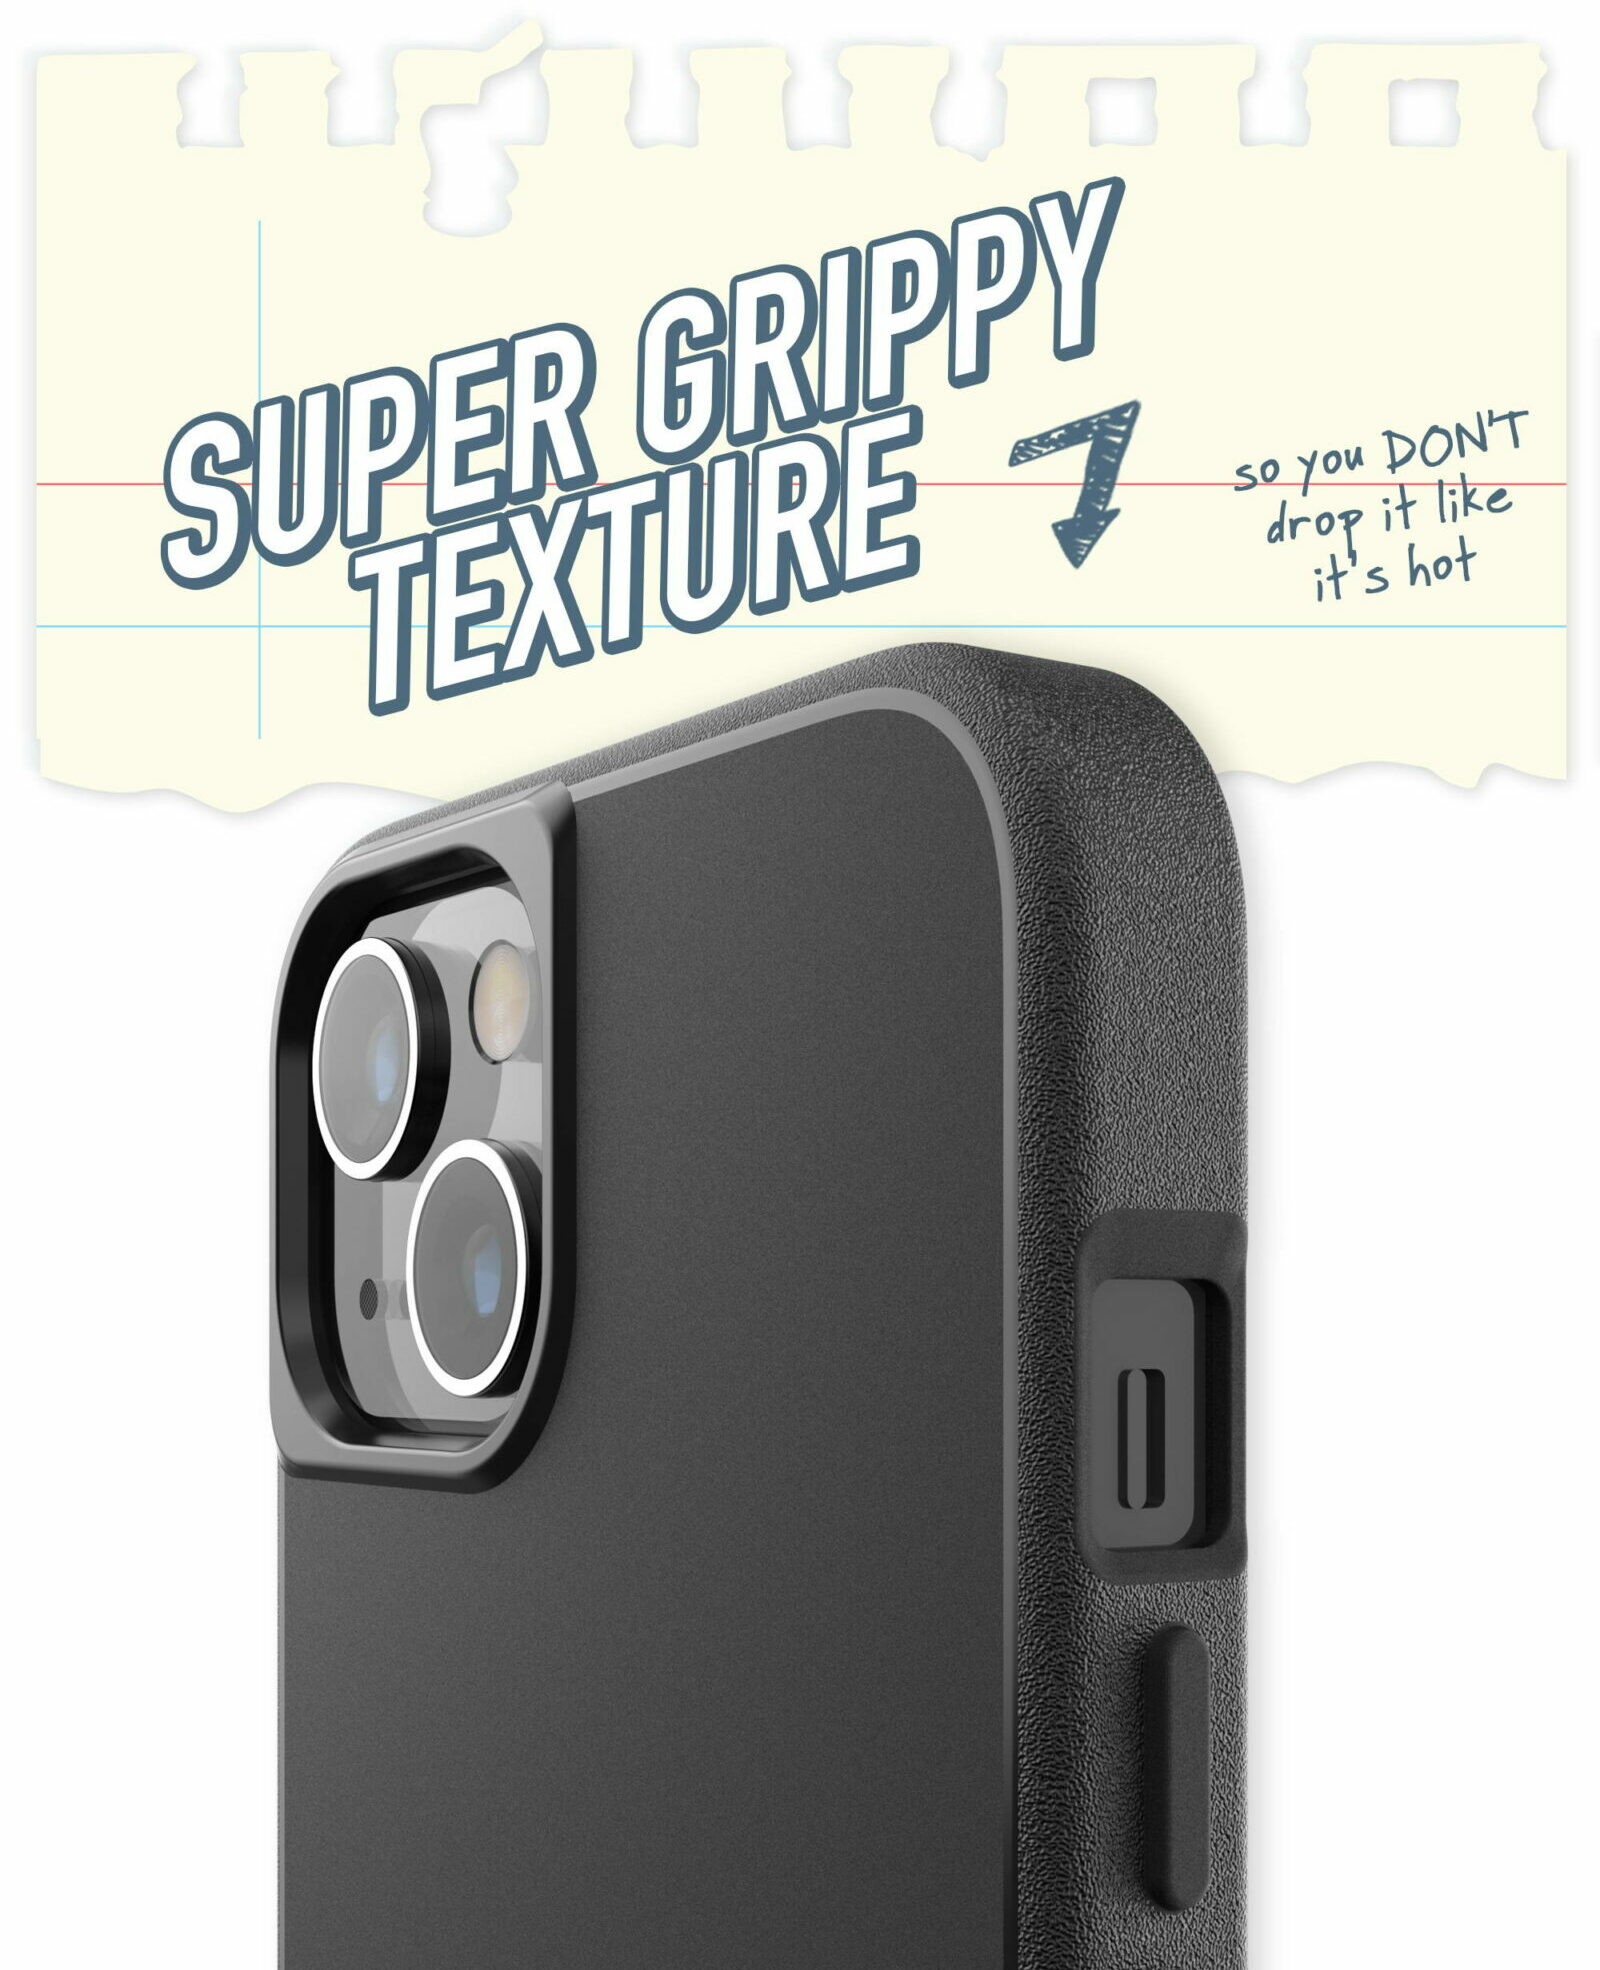 Gripmunk with MagSafe Slim Case giveaway: This case's extremely grippy texture means fewer toilet fails.